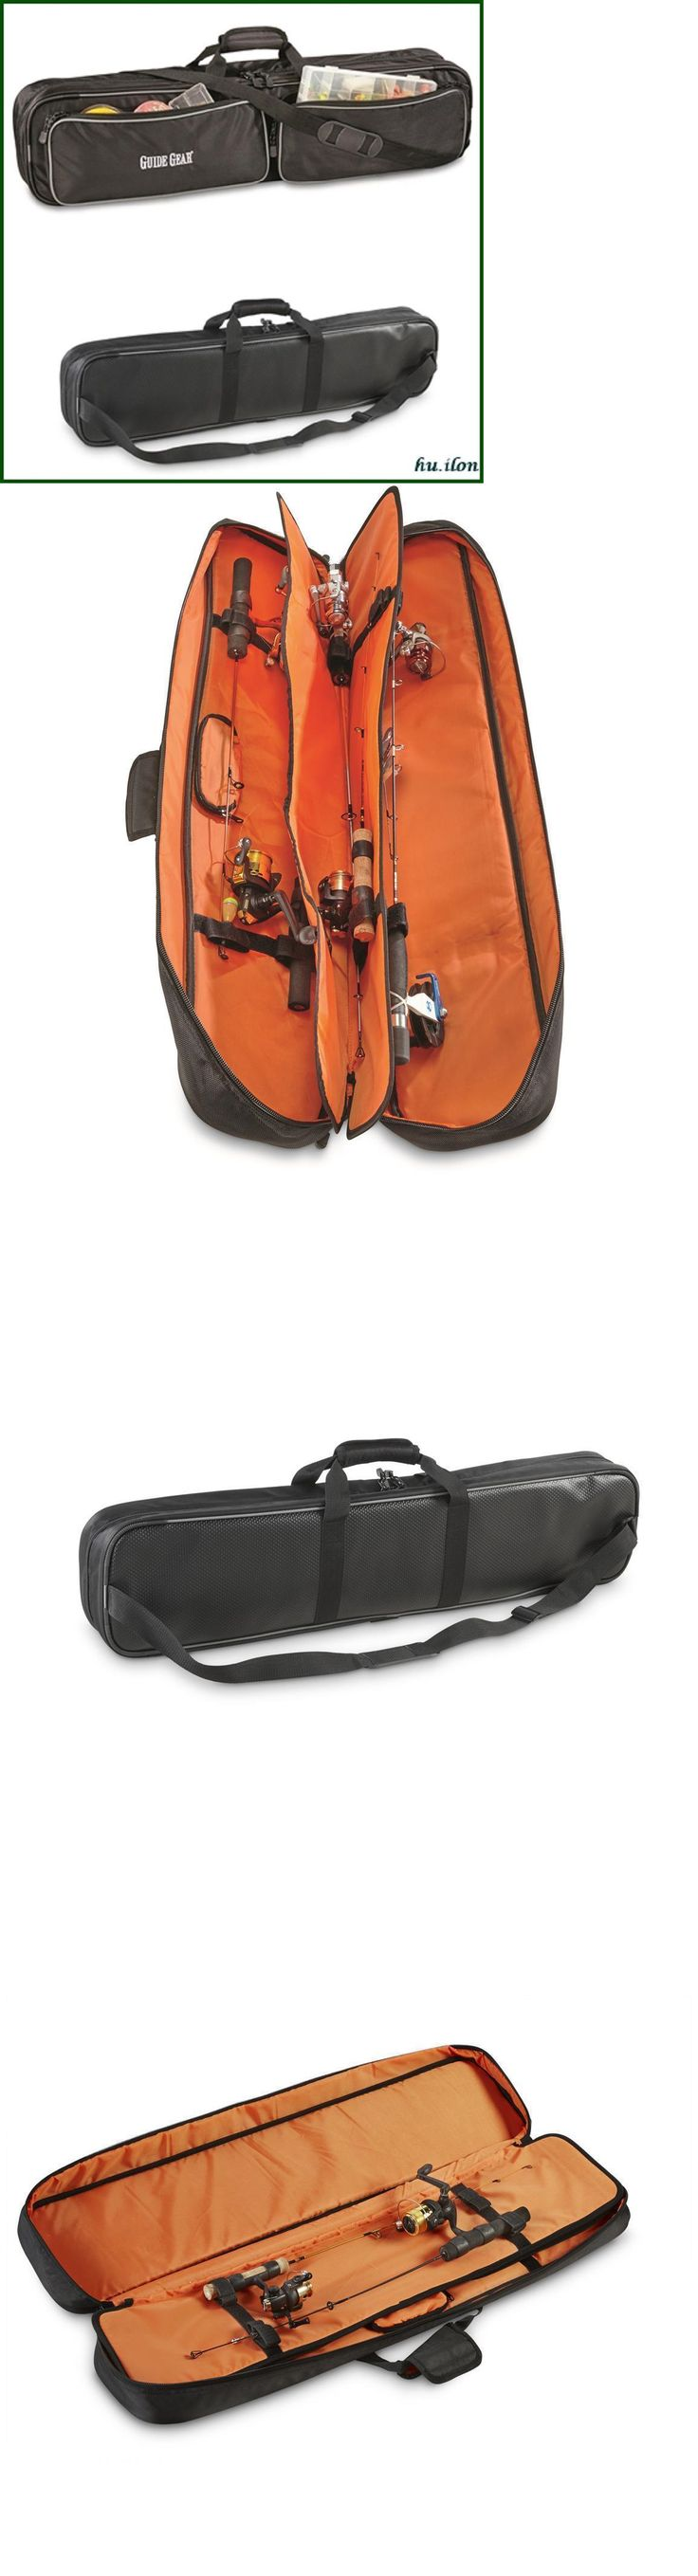 Rod Cases Tubes and Racks 81473: Guide Gear Ice Fishing Rod Case, 6-Rod And Reel Combos Convenient Way To Store -> BUY IT NOW ONLY: $54.99 on eBay!